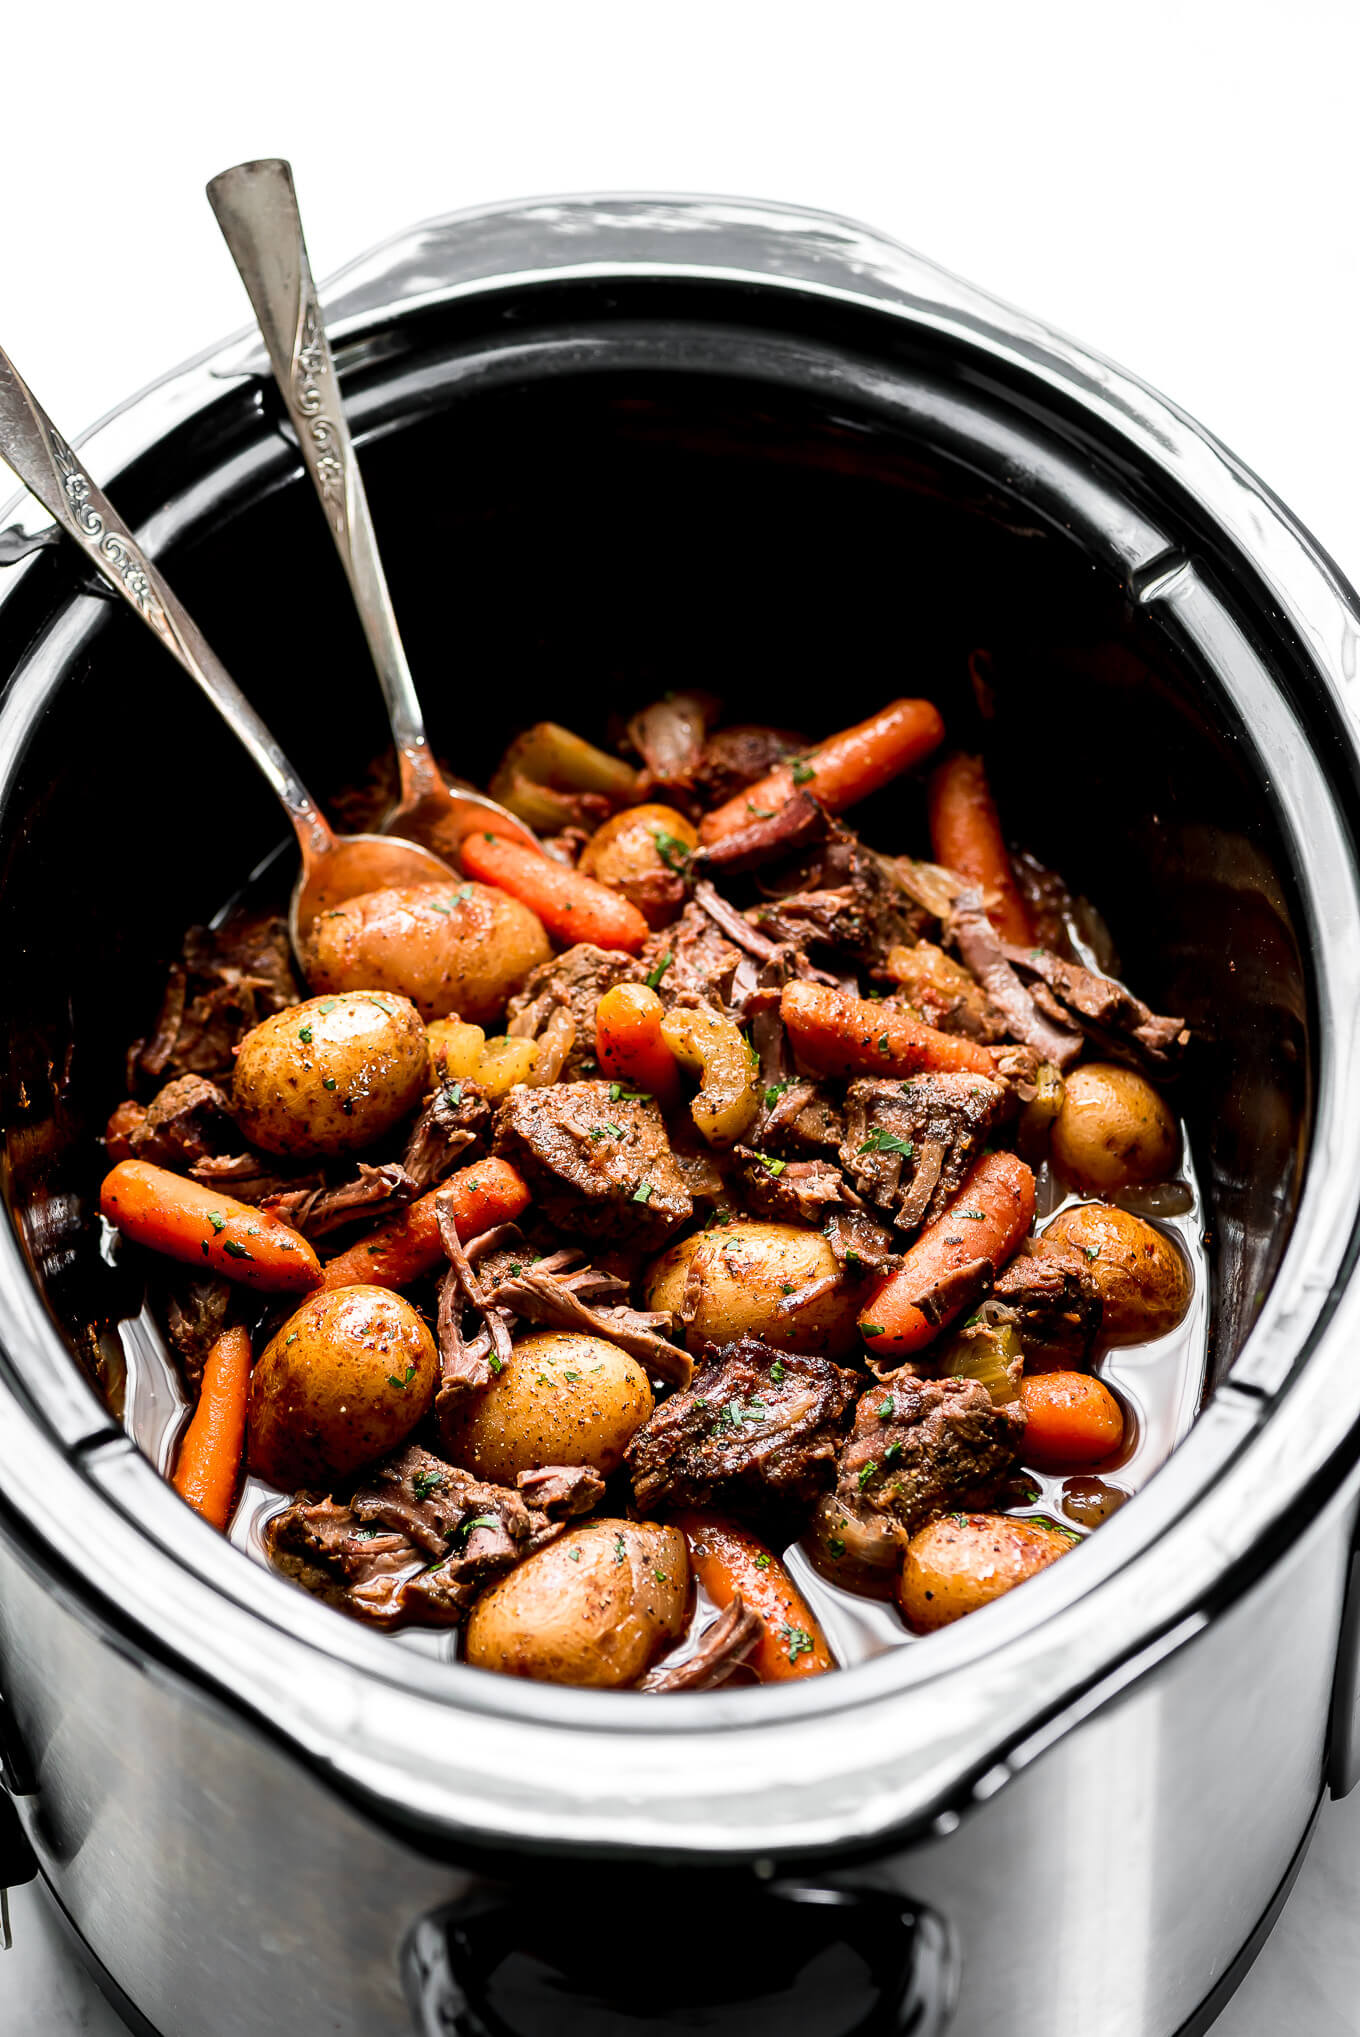 Slow Cooker Beef Stew in a Crock-Pot with two spoon resting in the bowl.